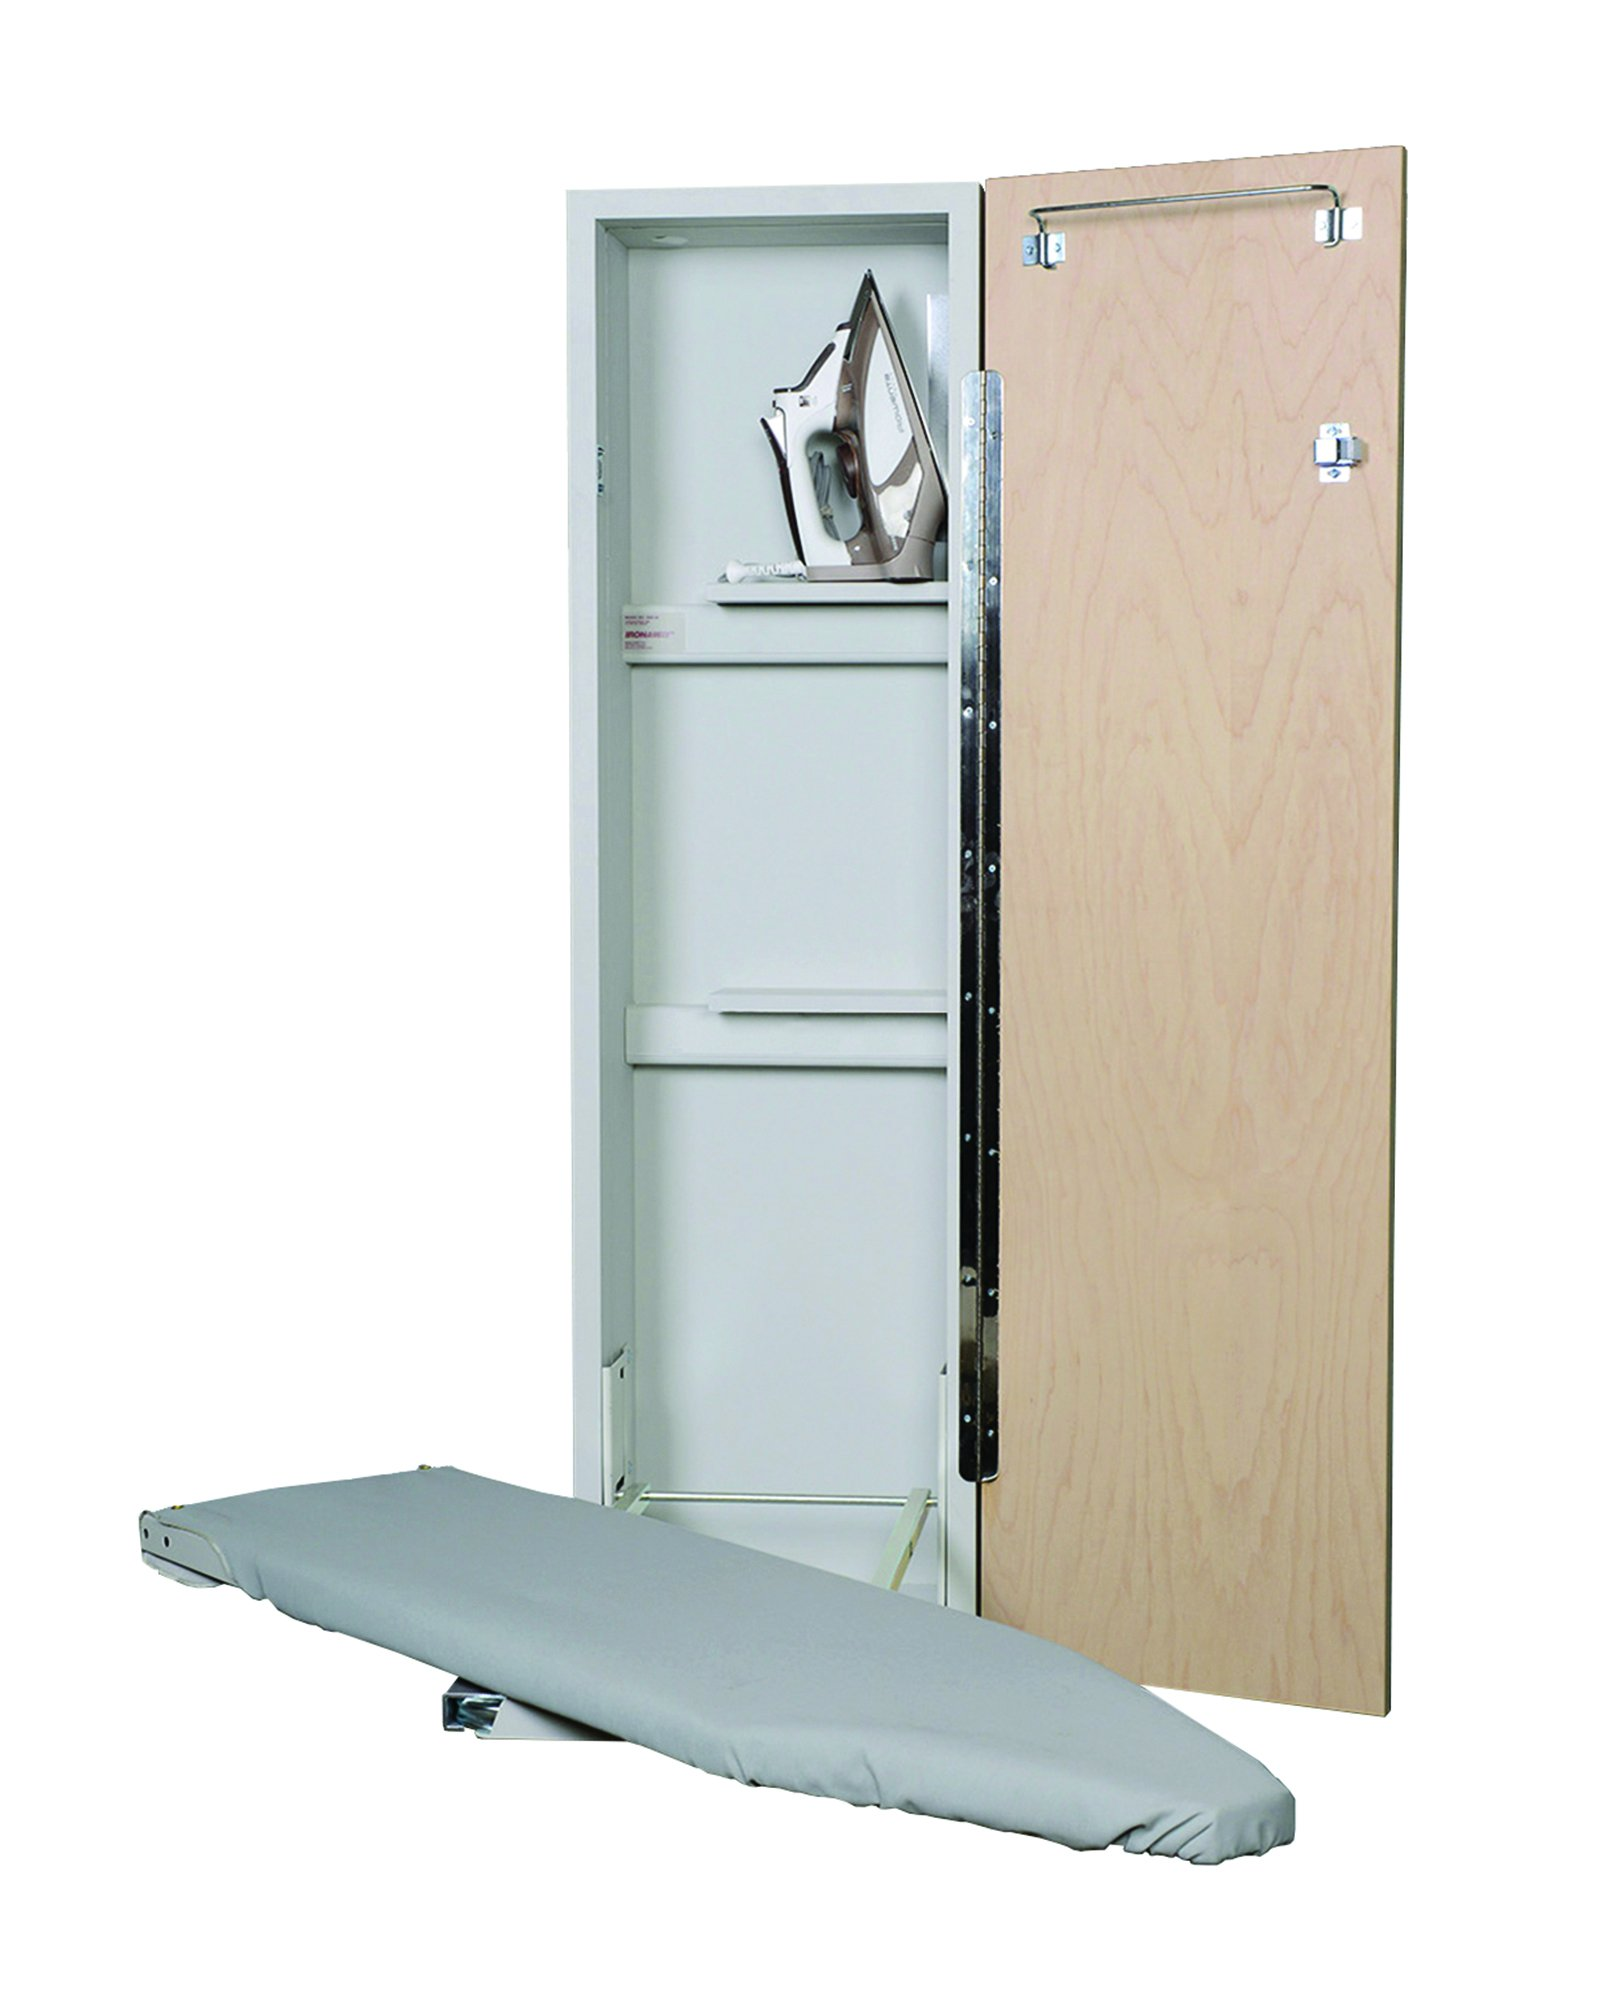 Iron-a-Way Deluxe Swivel Non-Electric Ironing Center, Flat Maple Door